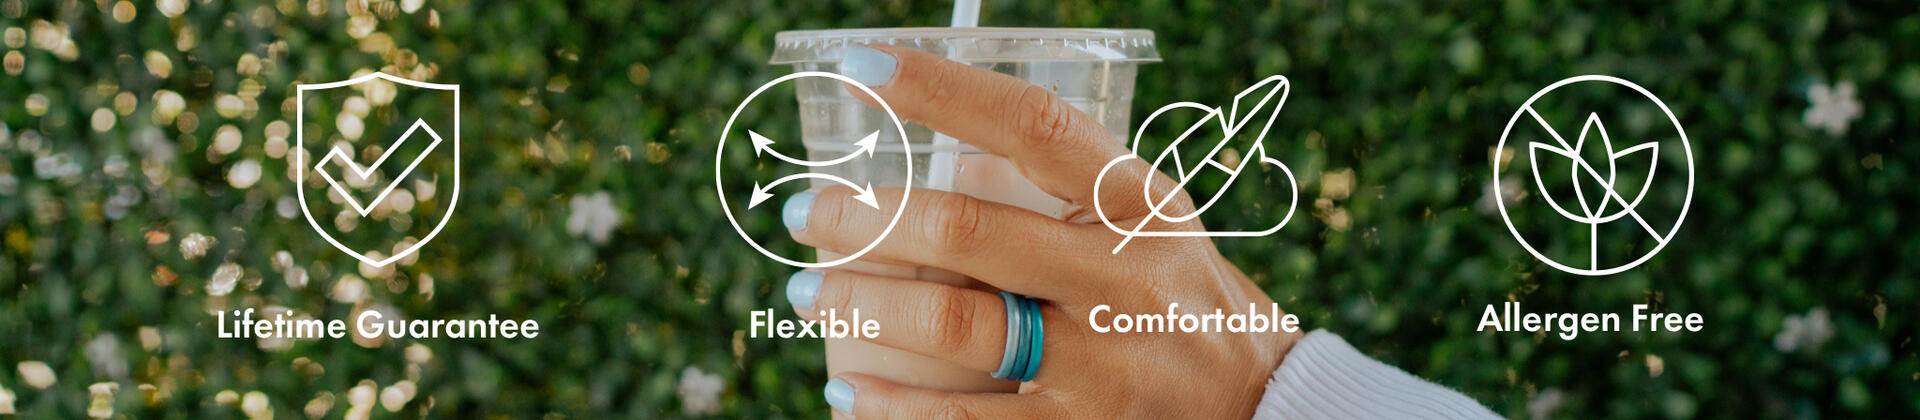 Enso silicone rings have a lifetime guarantee, are flexible, comfortable, and allergen free!